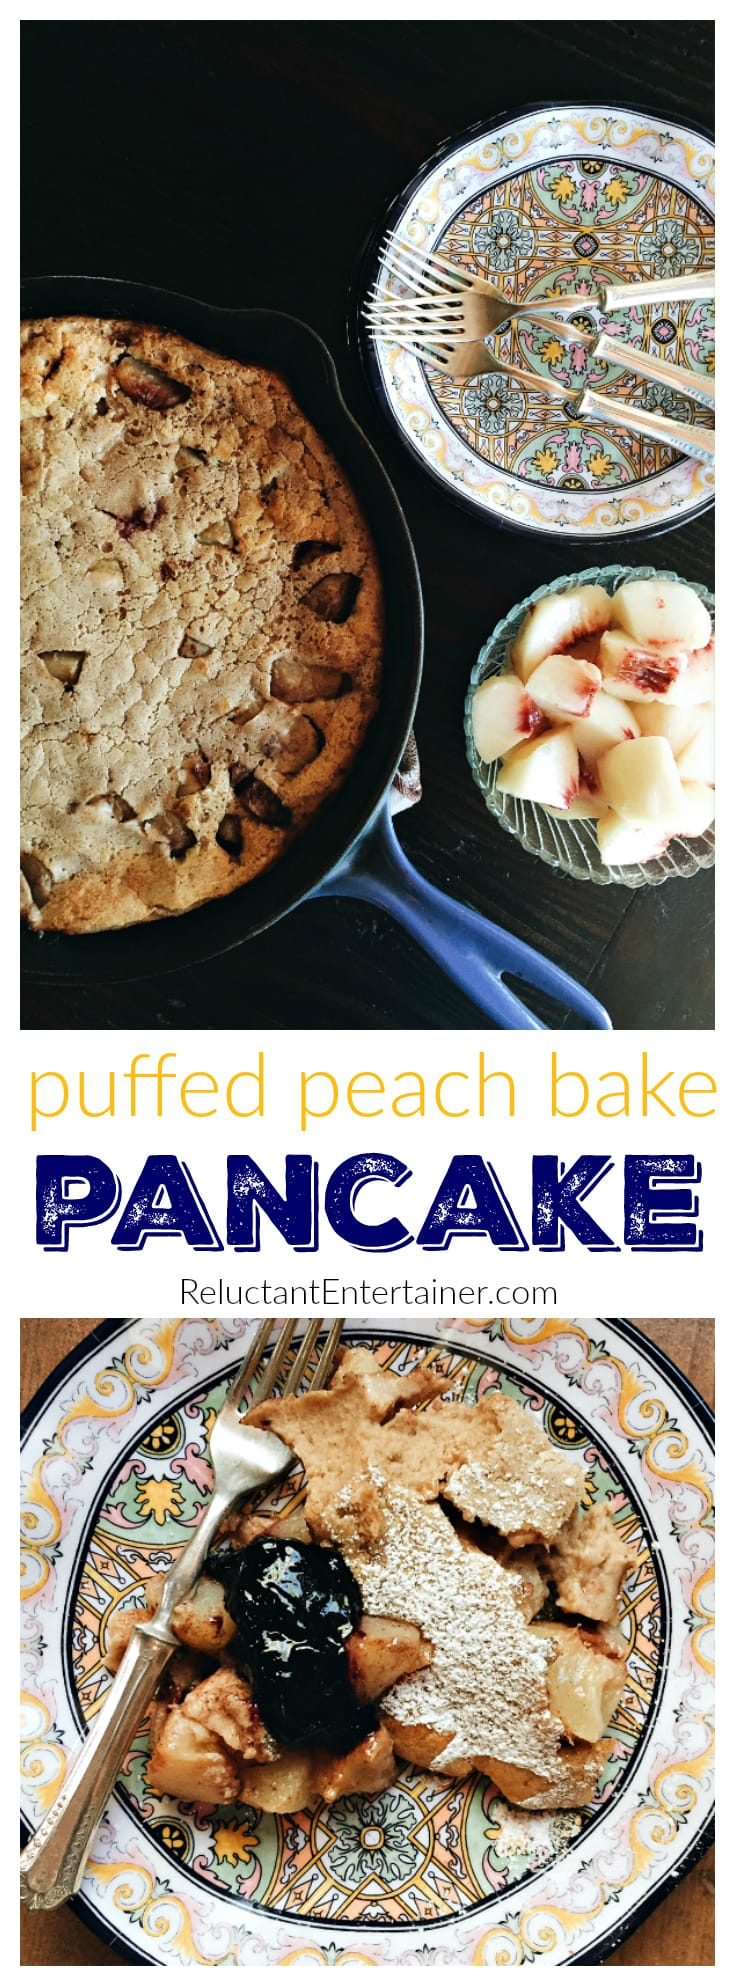 Puffed Peach Bake Pancake